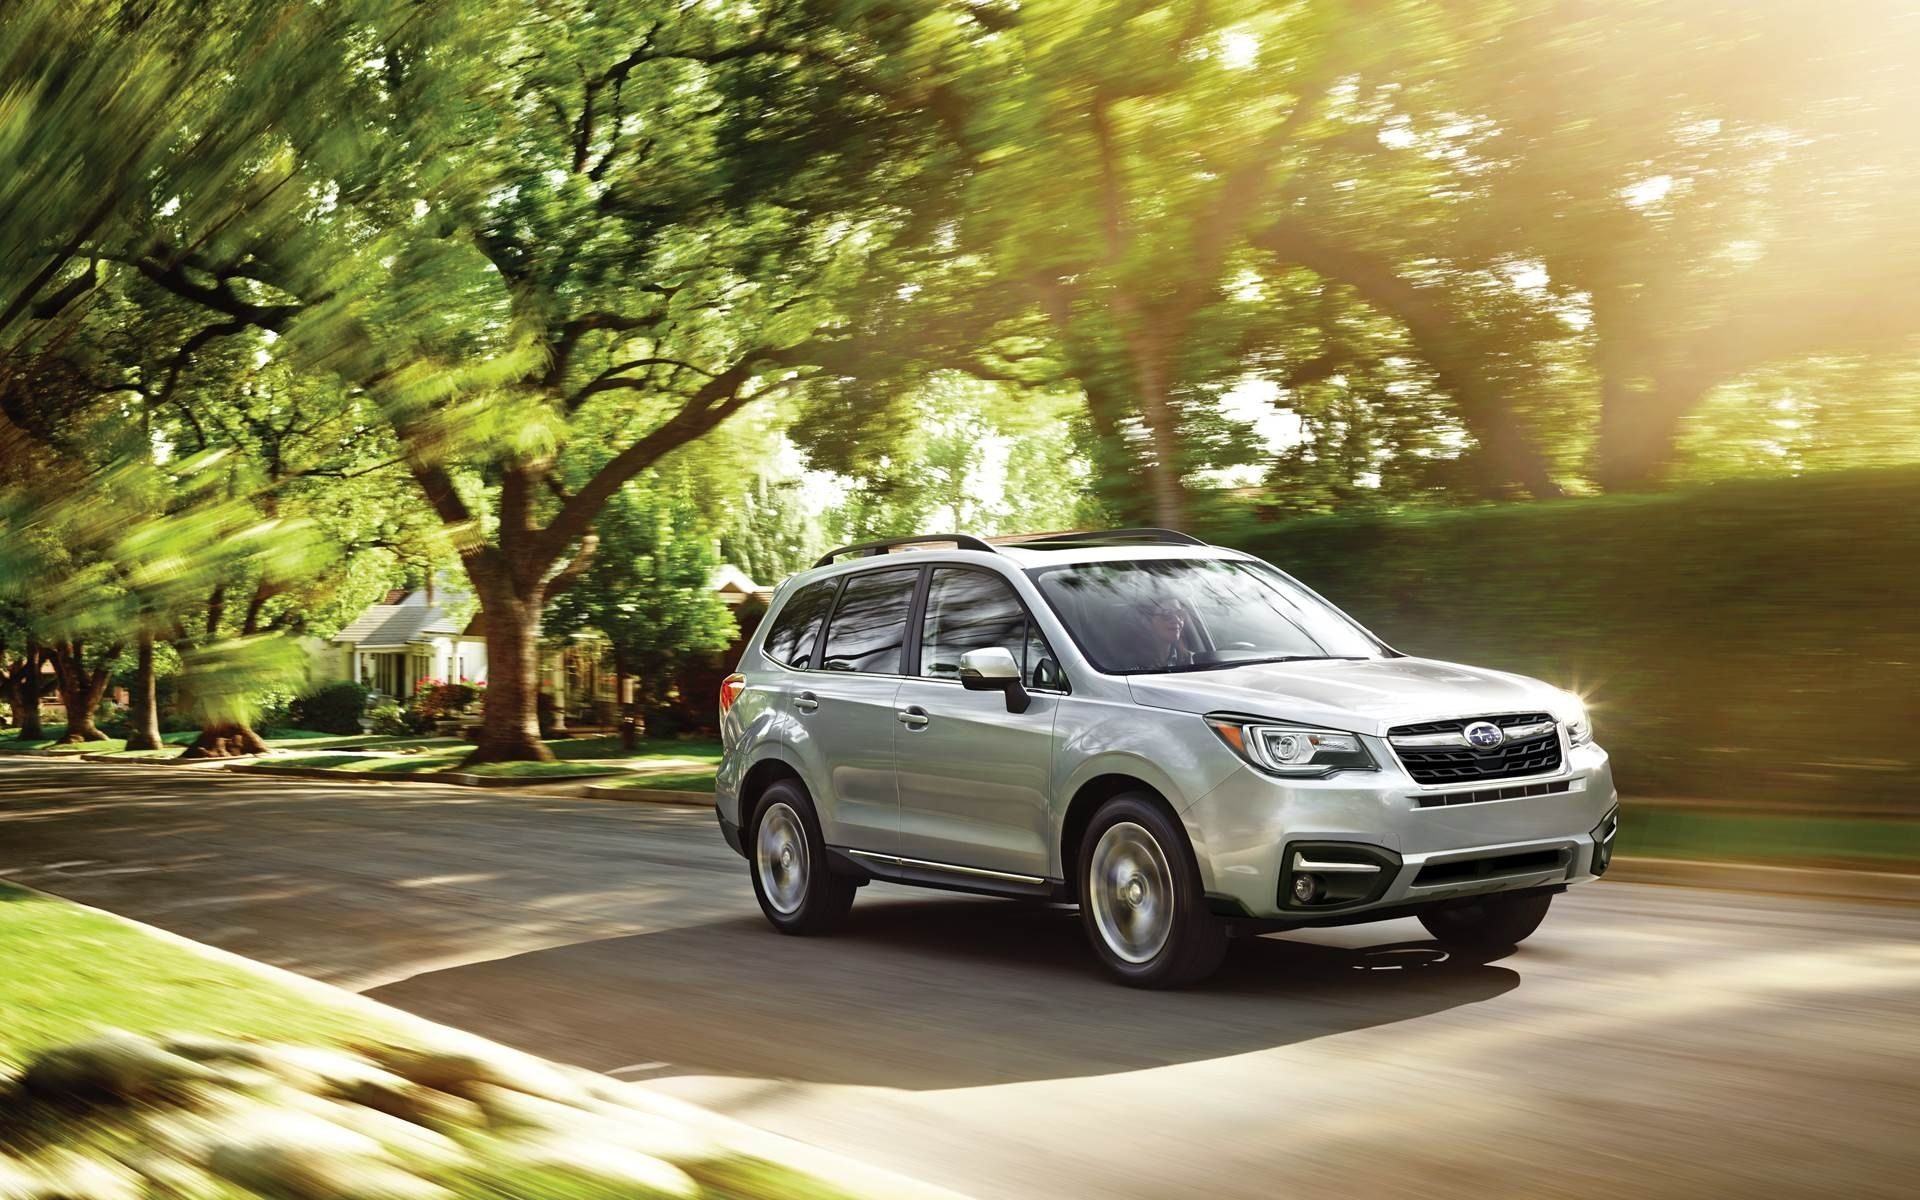 Car Trend Reviews The 2018 Subaru Forester Where Consumers Can Find Detailed Information On Specs Fuel Economy Transmission And Safety 160 Additional New Fe Di 2020